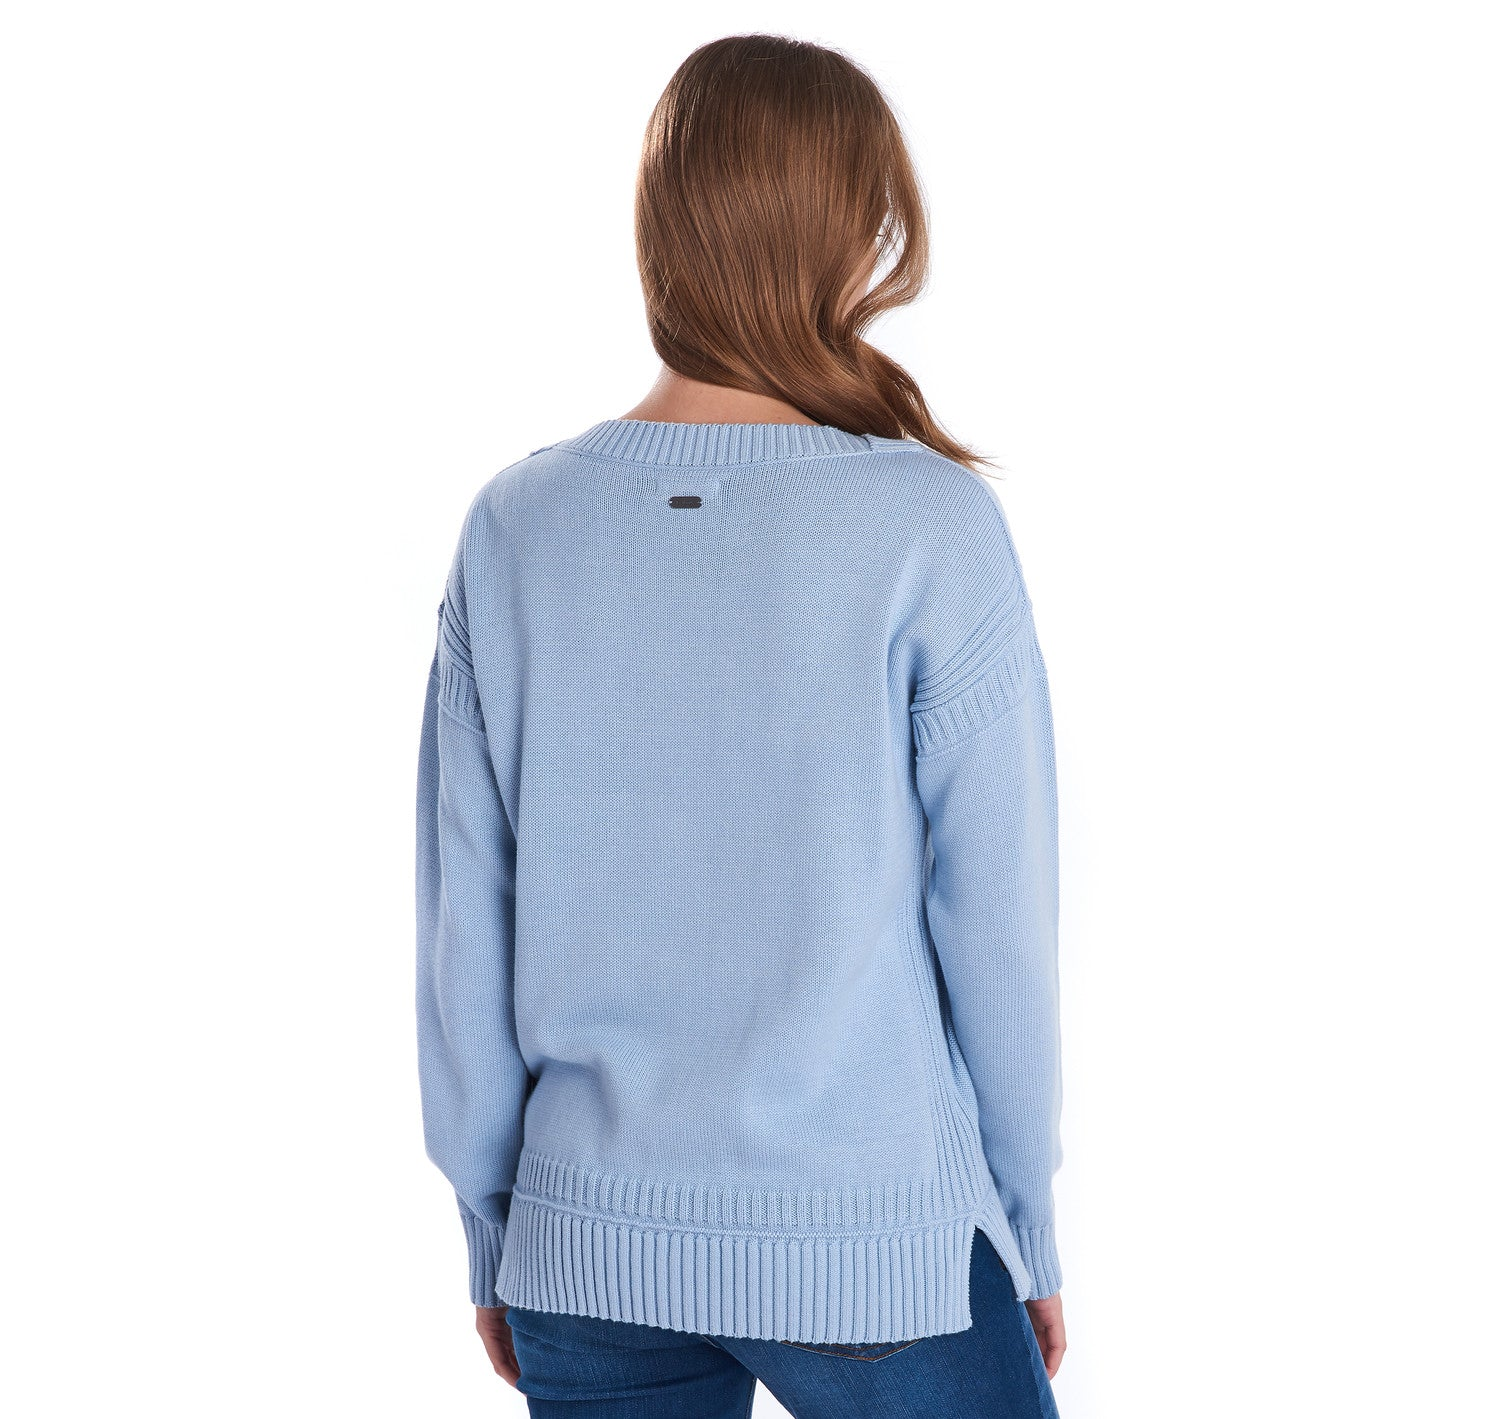 Barbour Sailboat Knit Jumper for Ladies in Skyline Blue